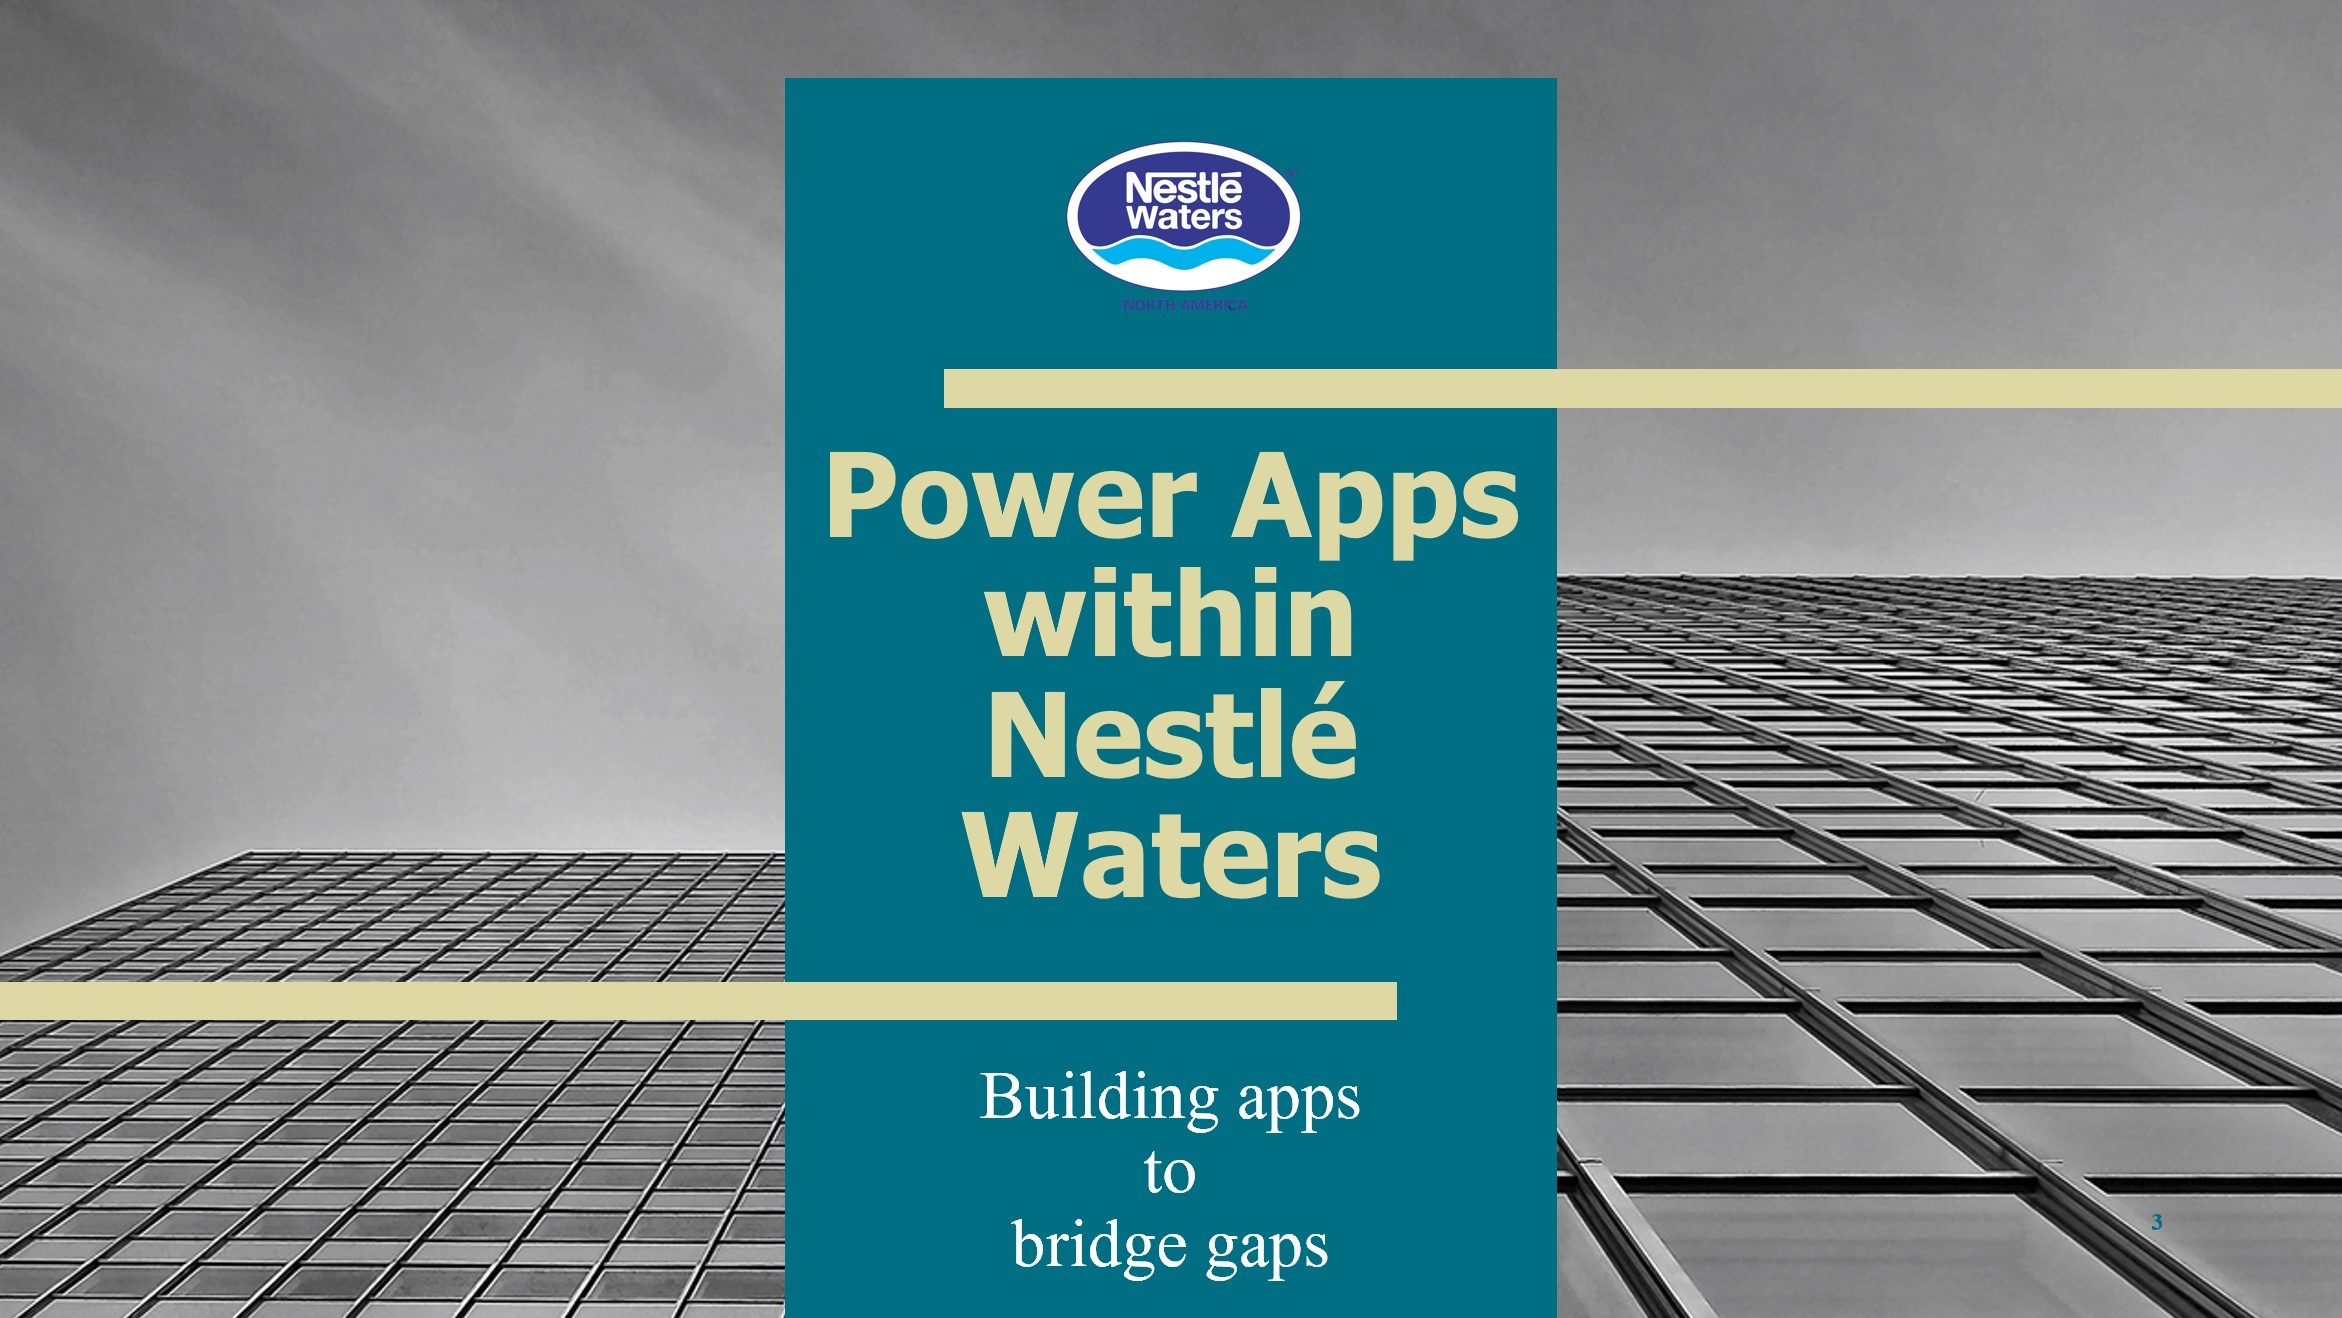 Nestlé Waters uses Power Apps to digitize operations at their manufacturing facility